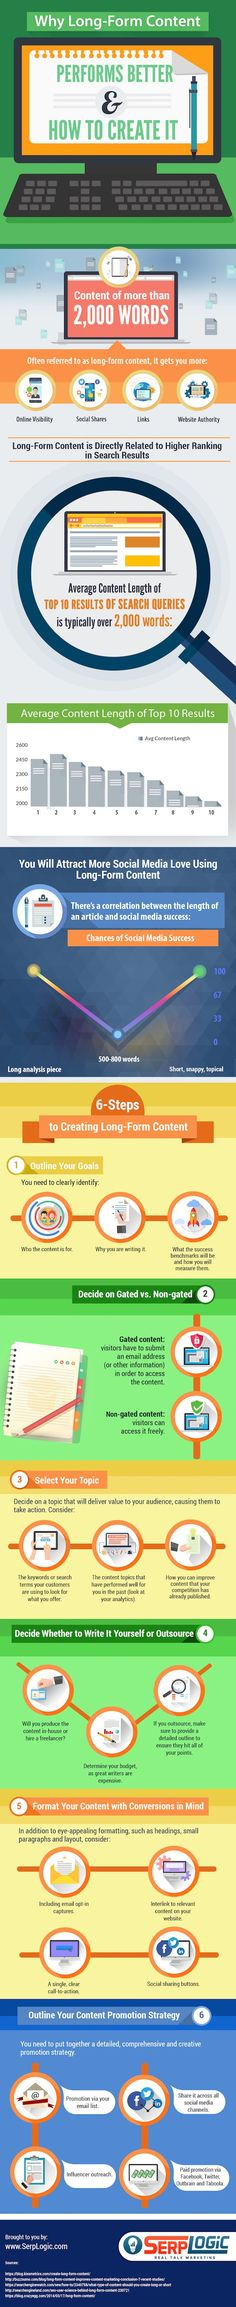 Why Long-Form Content Performs Better & How to Create It (Infographic)